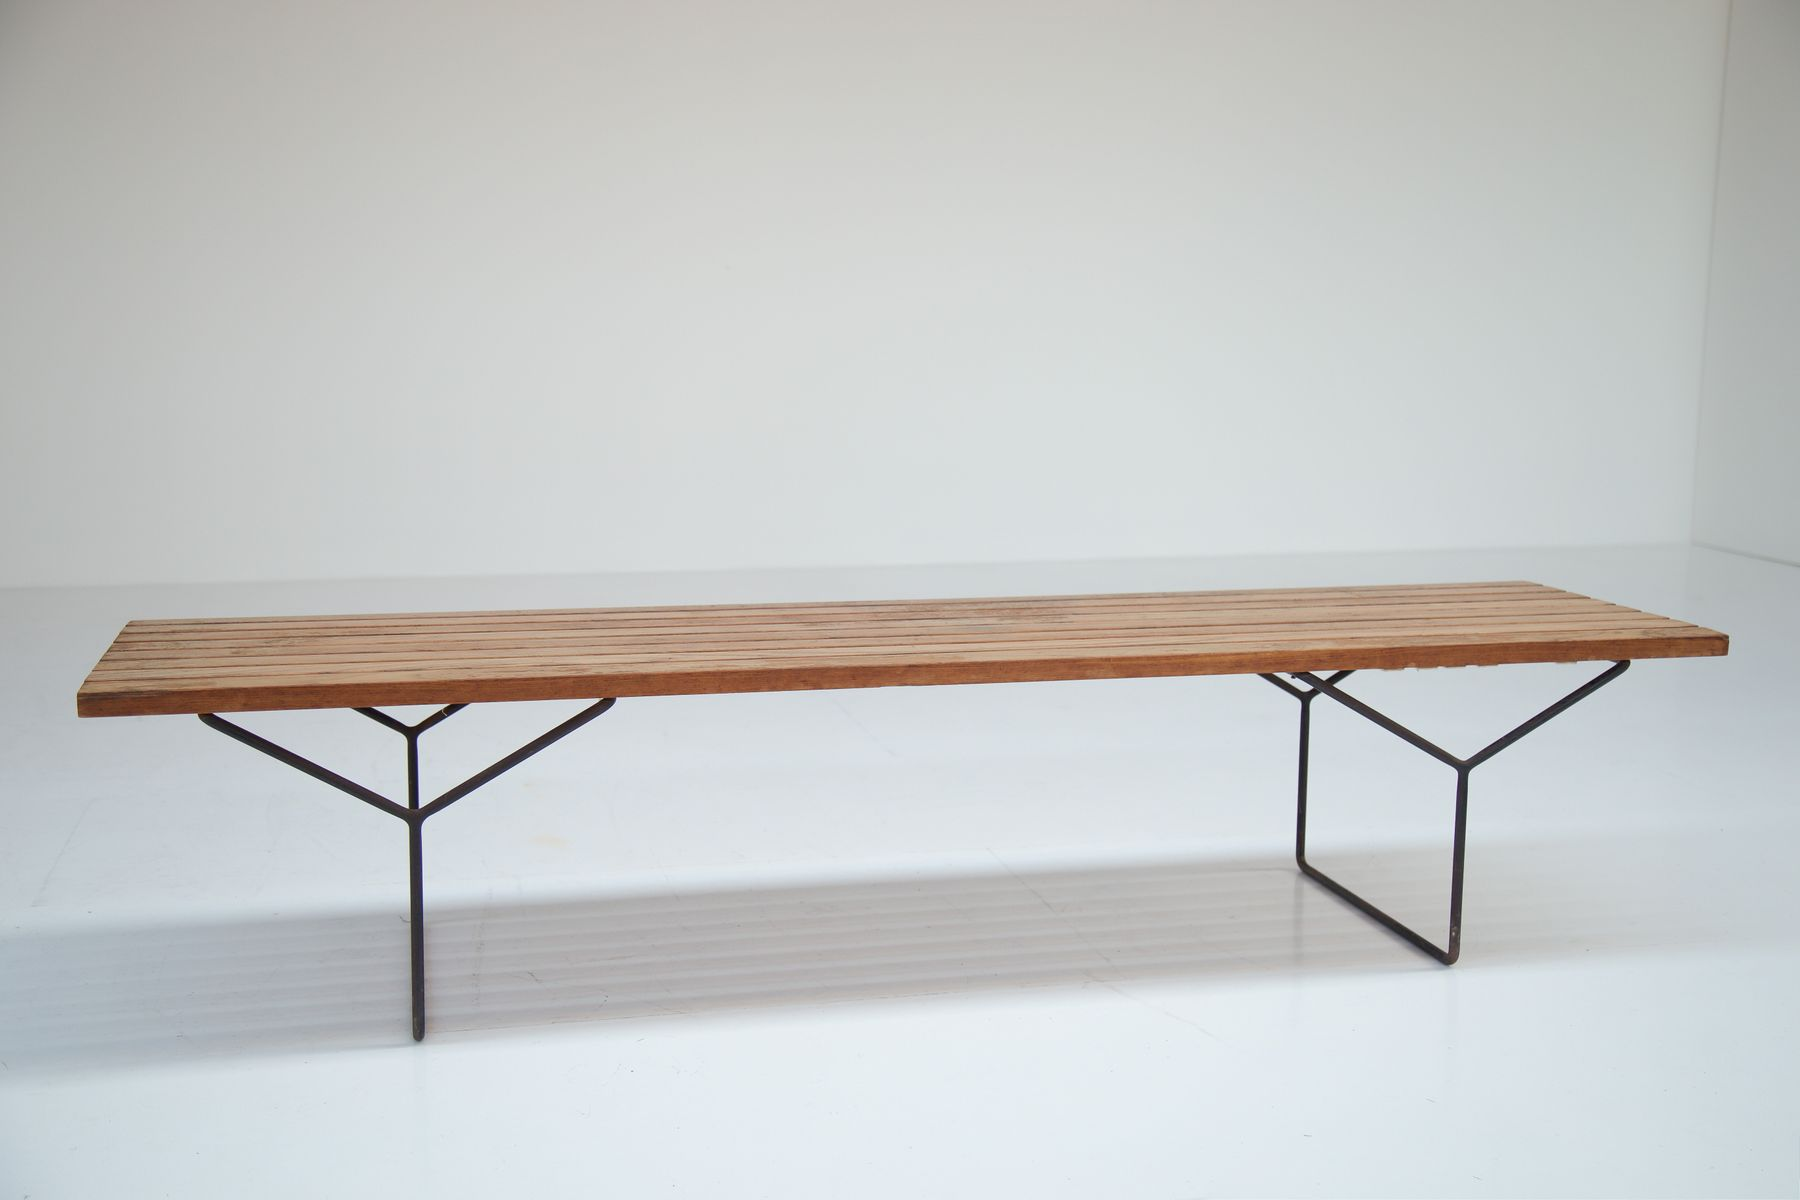 Mid Century Slat Bench By Harry Bertoia For Knoll For Sale At Pamono